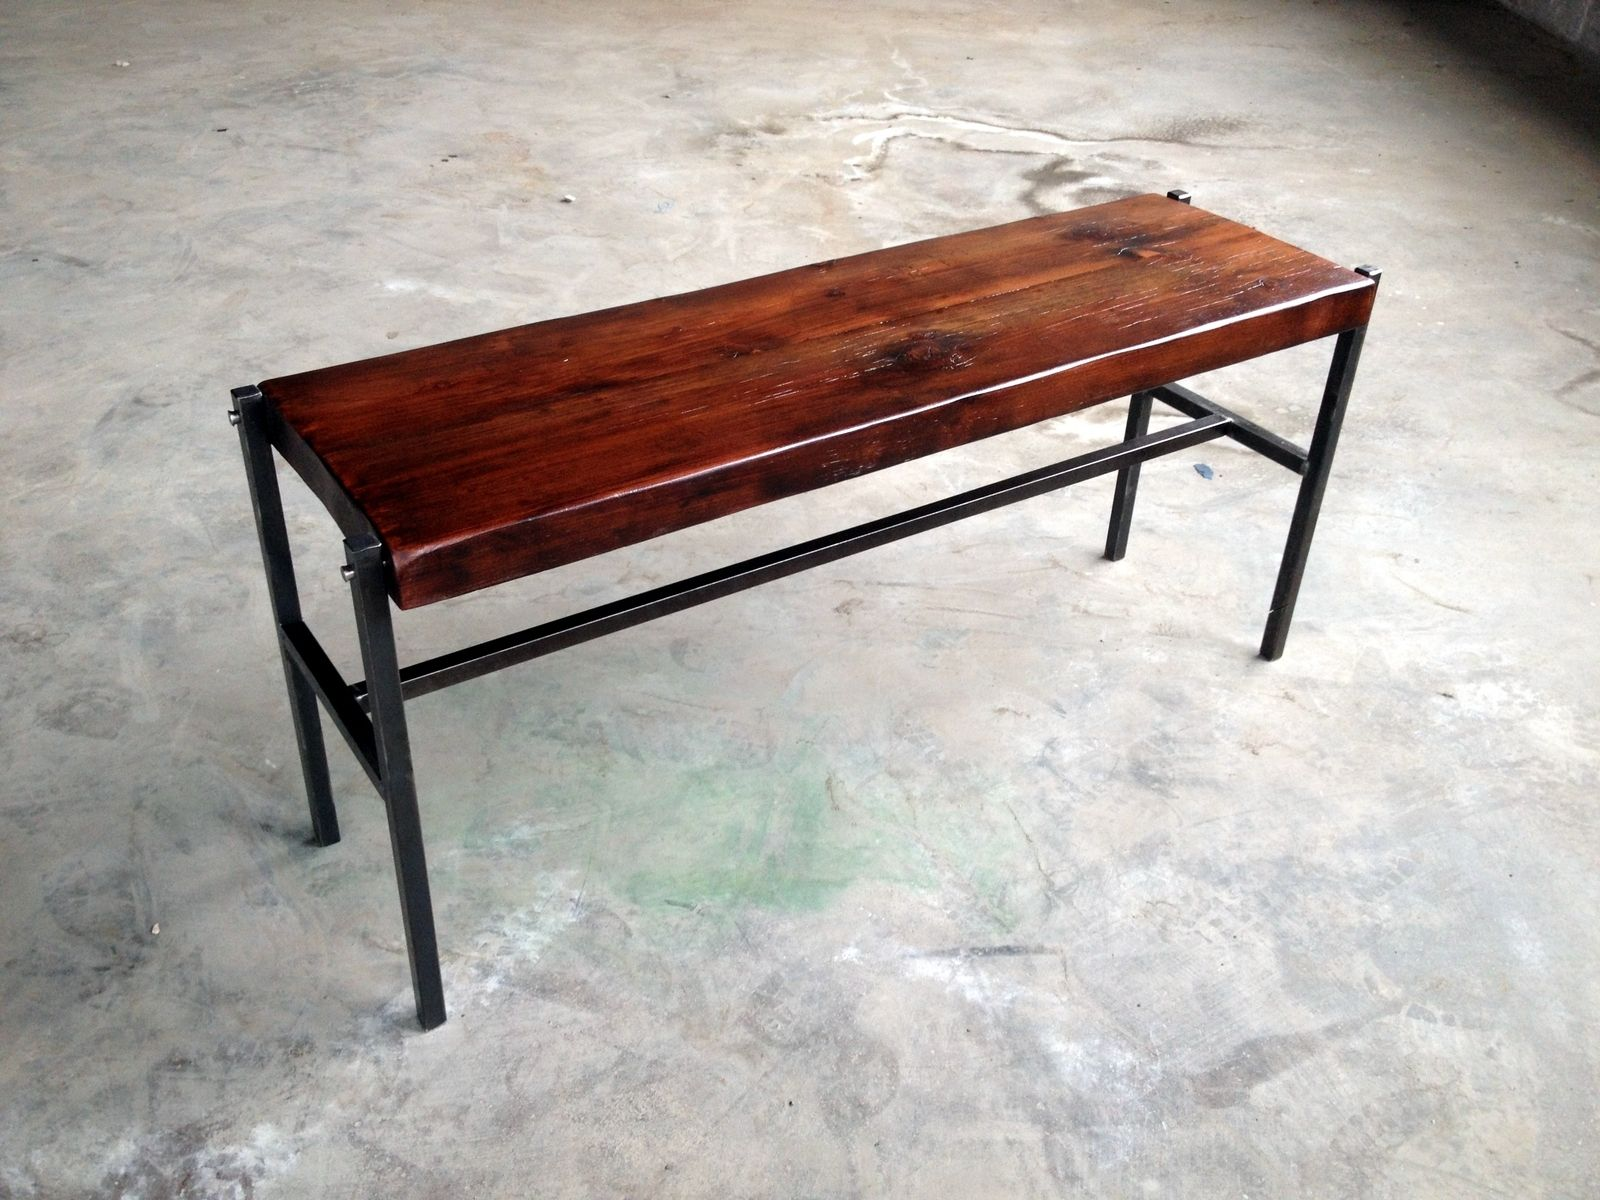 Handmade Reclaimed Wood Bench With Iron Legs By Shellback Iron Works